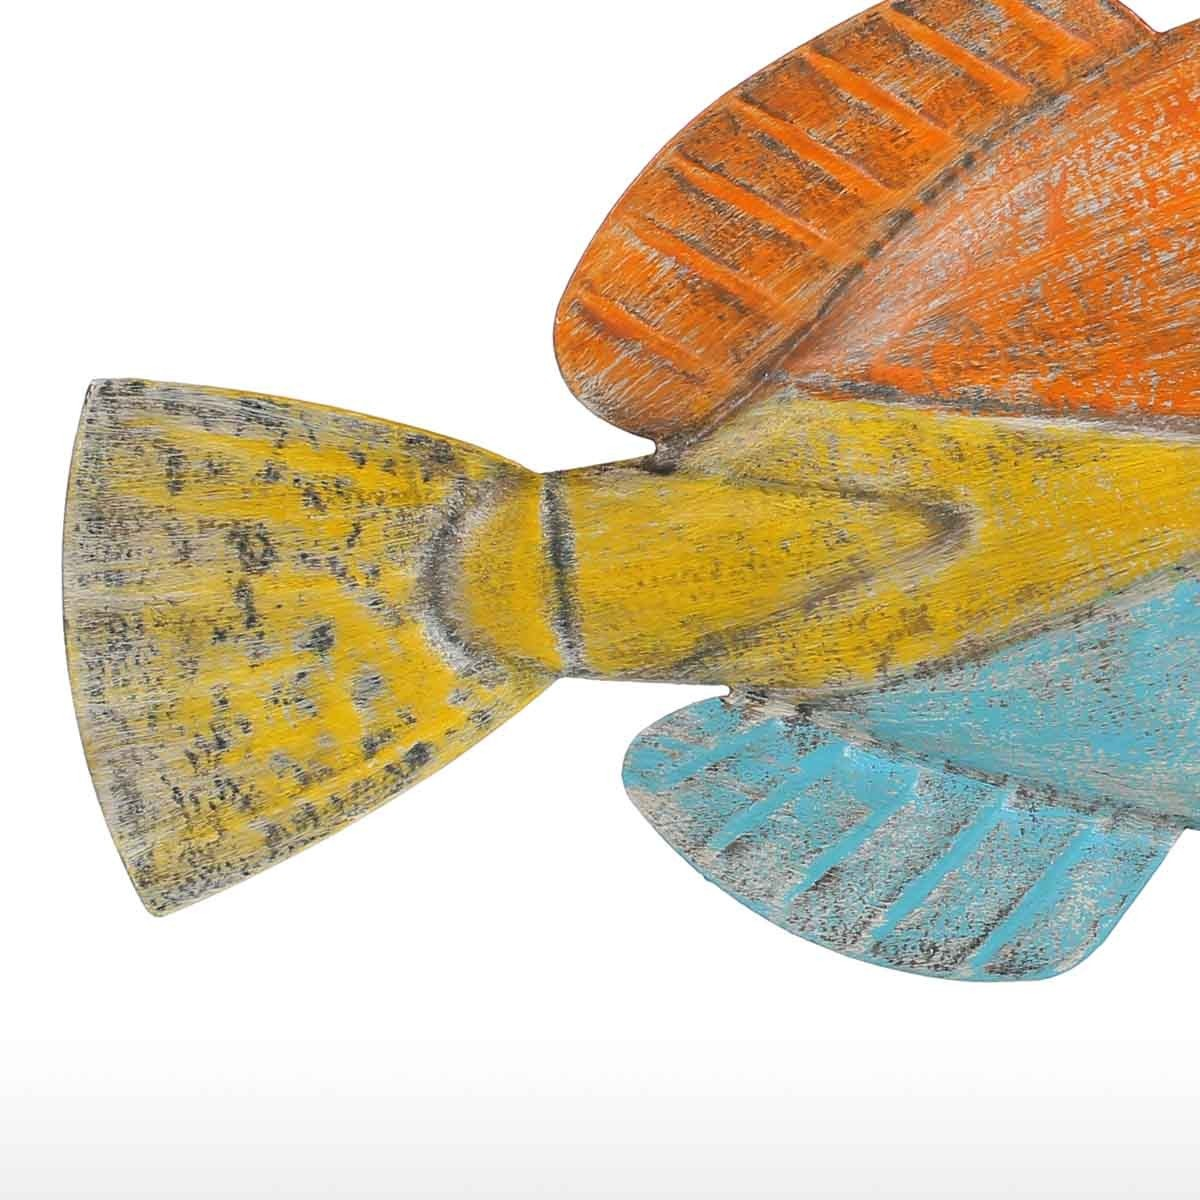 Fish Wall Hanging 6 Iron Wall Decor Creative Ornament Craft Wall ...